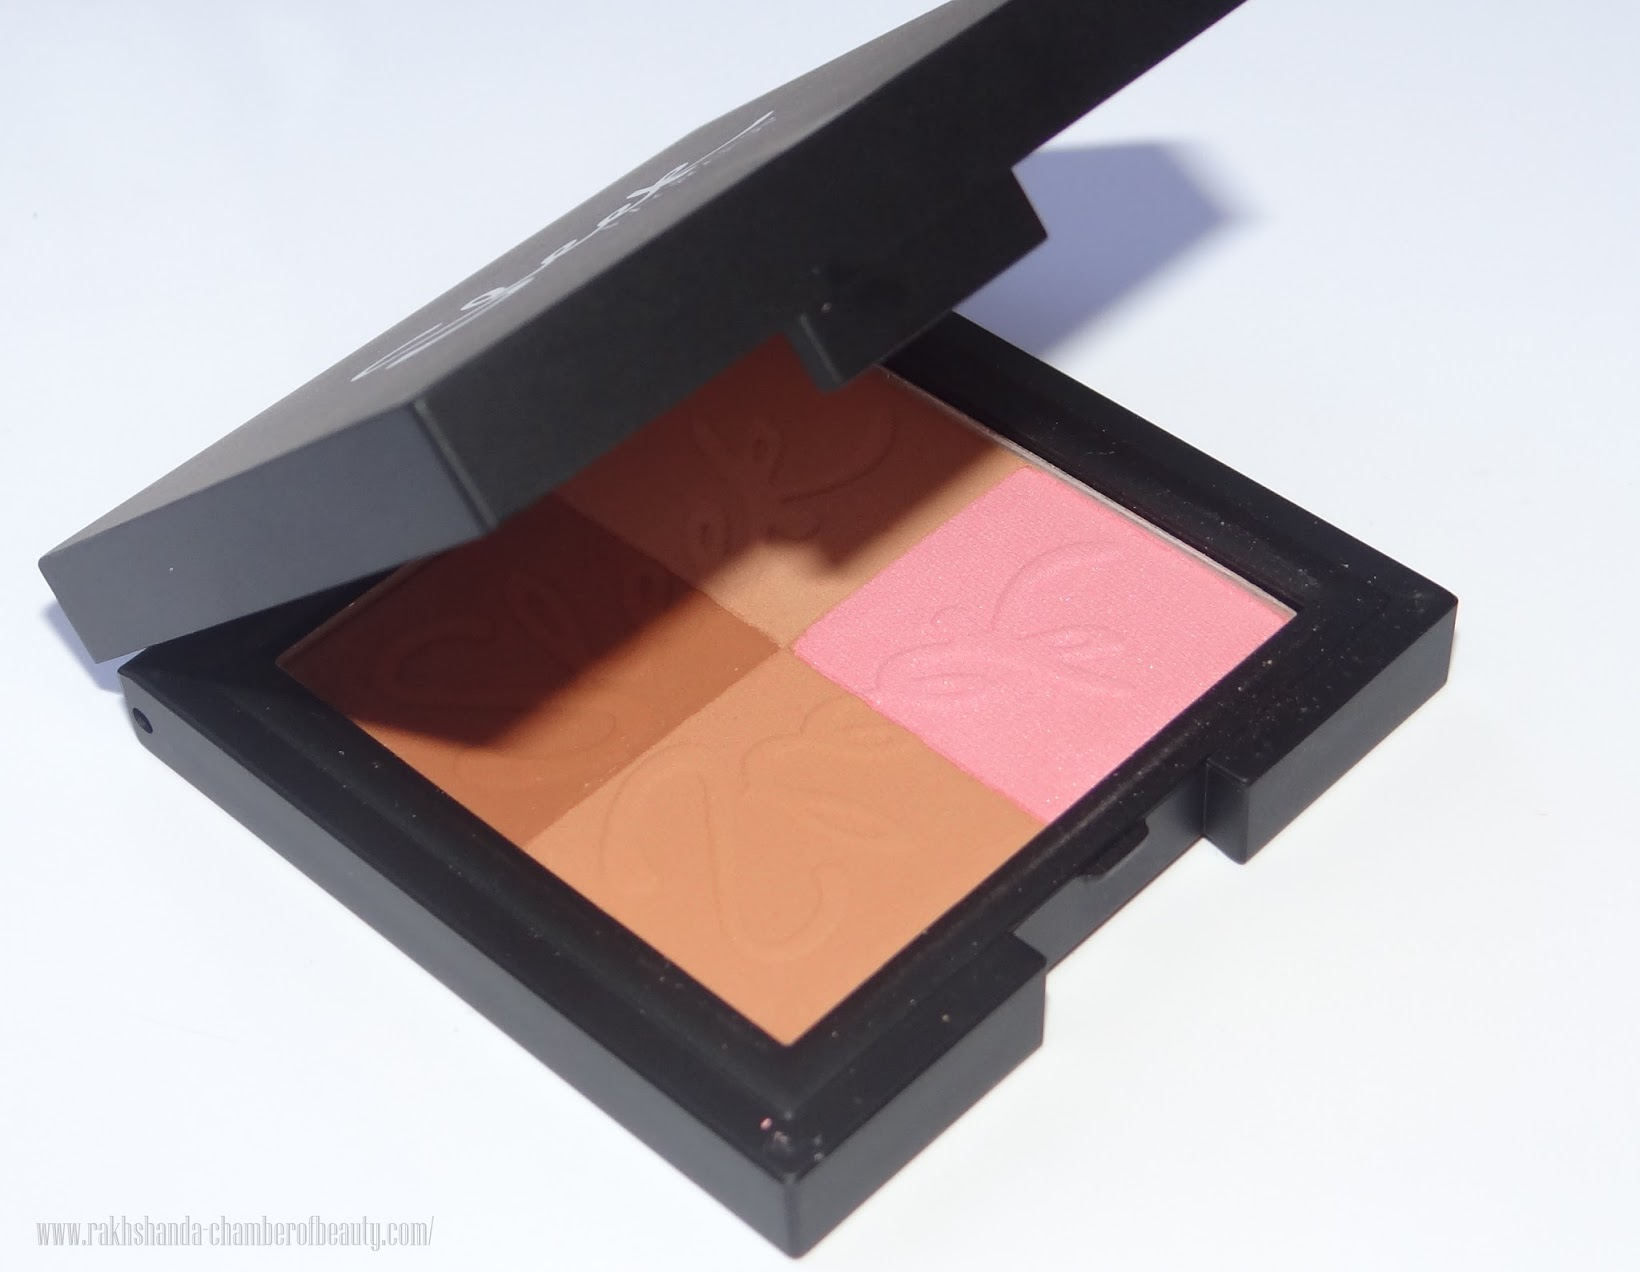 Sleek Makeup Bronze Block LIGHT Review, Photos & Swatches, best drugstore bronzer review & swatches, beauty and makeup, how to contour with Sleek Makeup Bronze Block, Indian beauty blogger, Chamber of Beauty